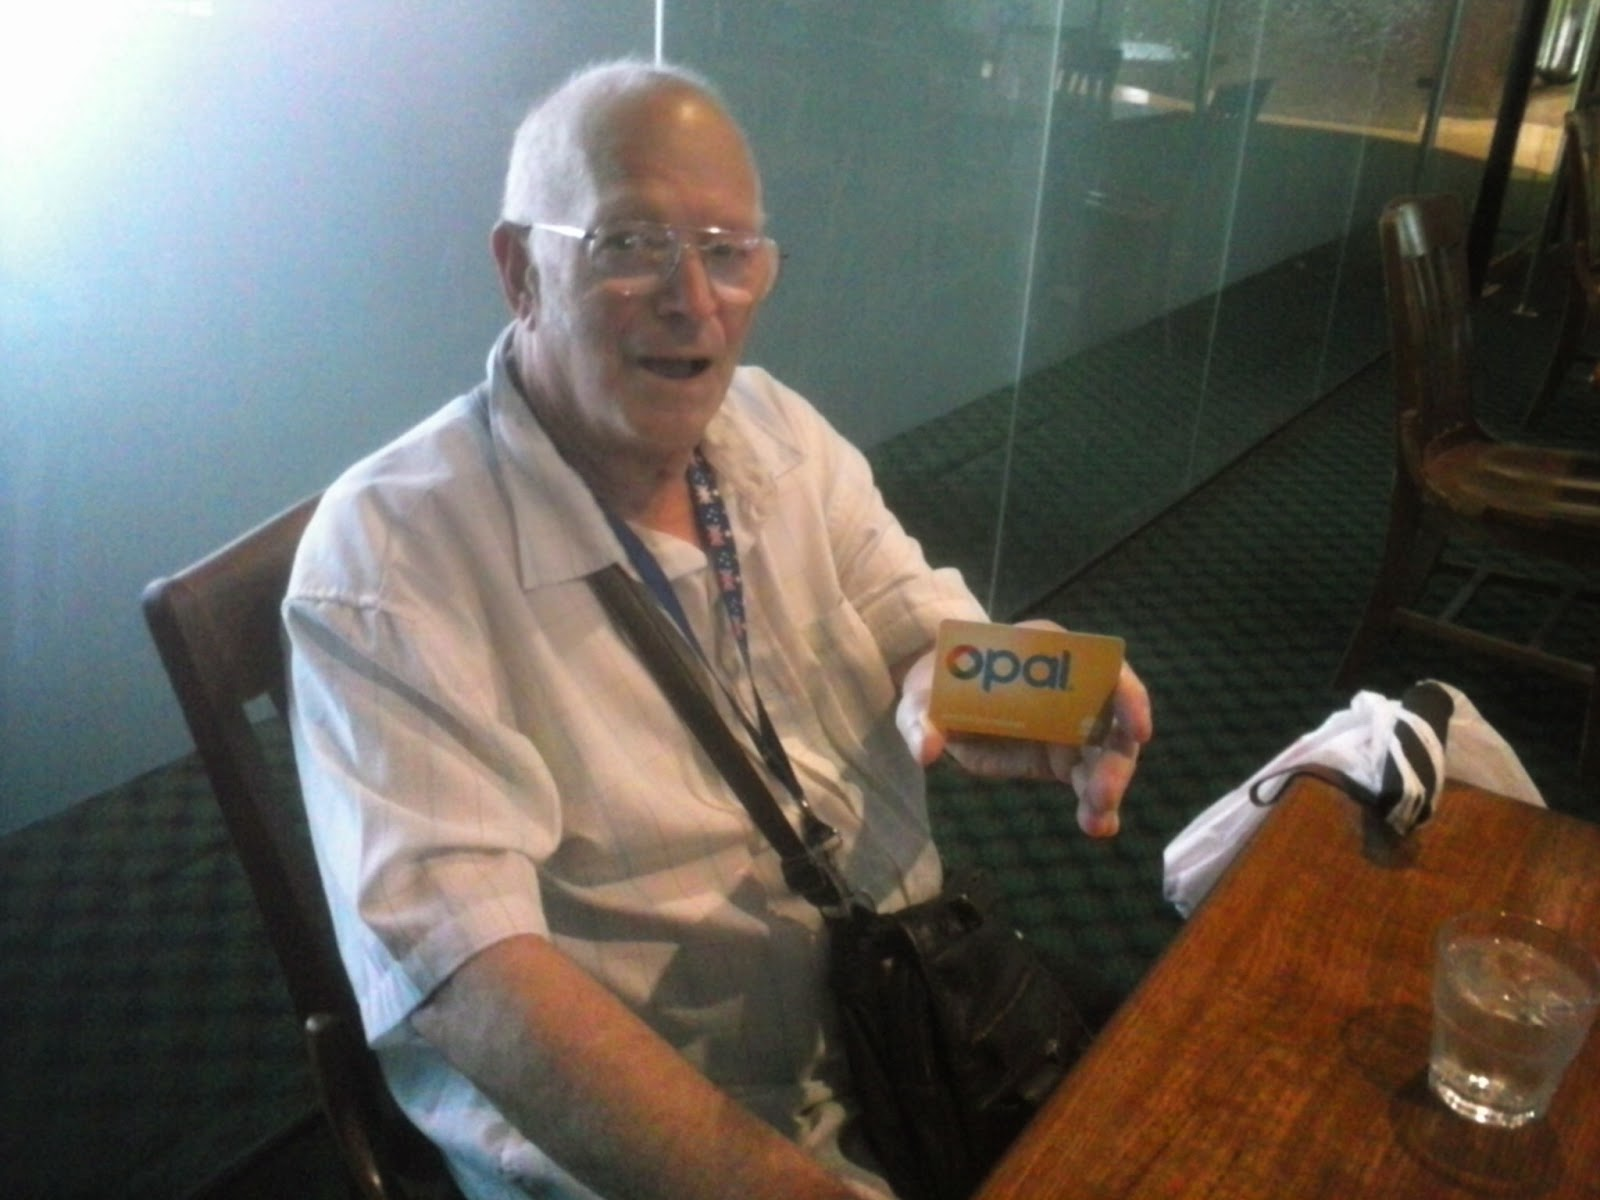 how to buy opal card for pensioner